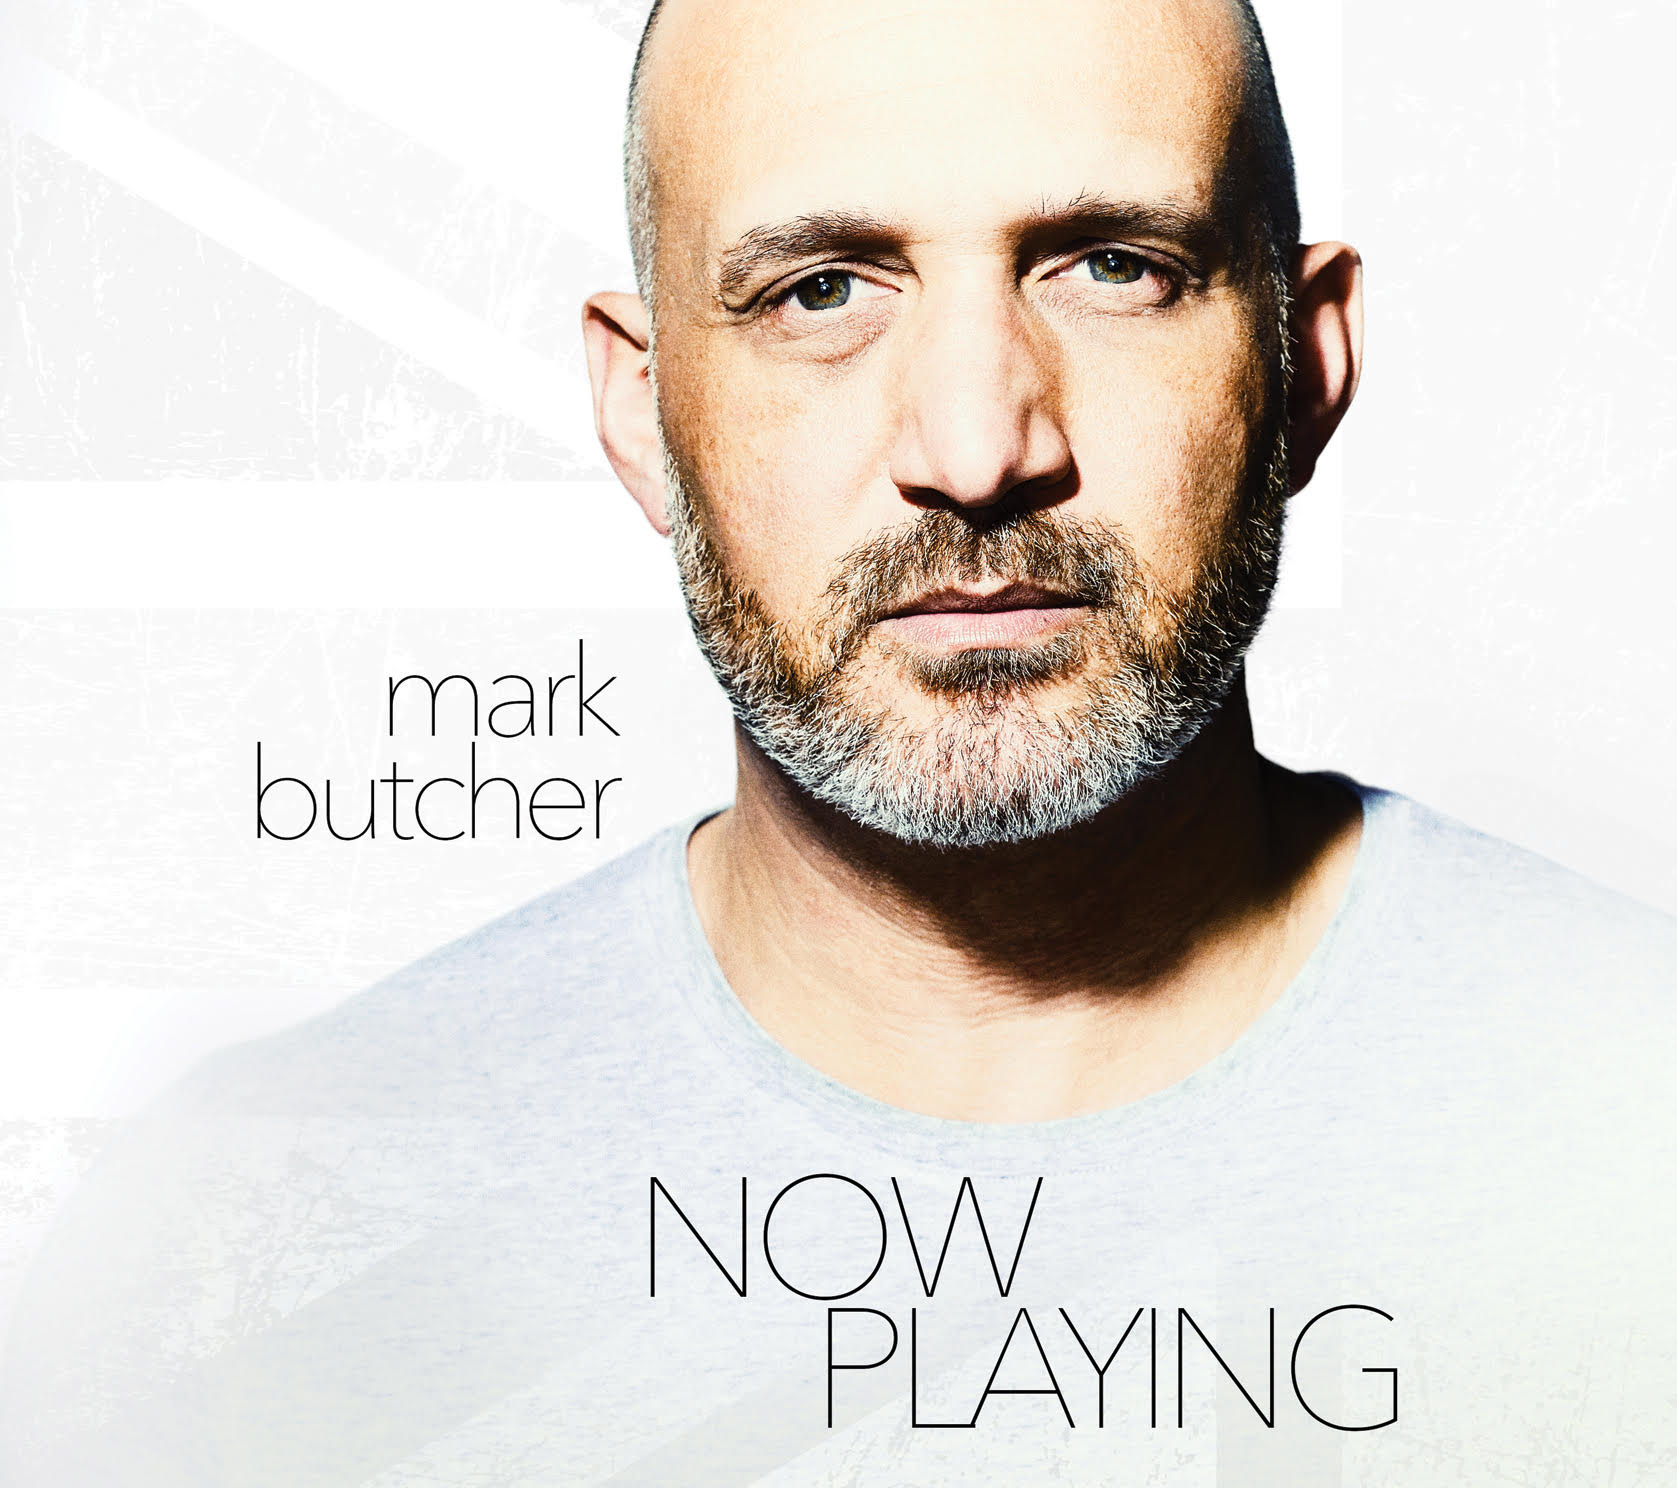 Mark Butcher - Now Playing album